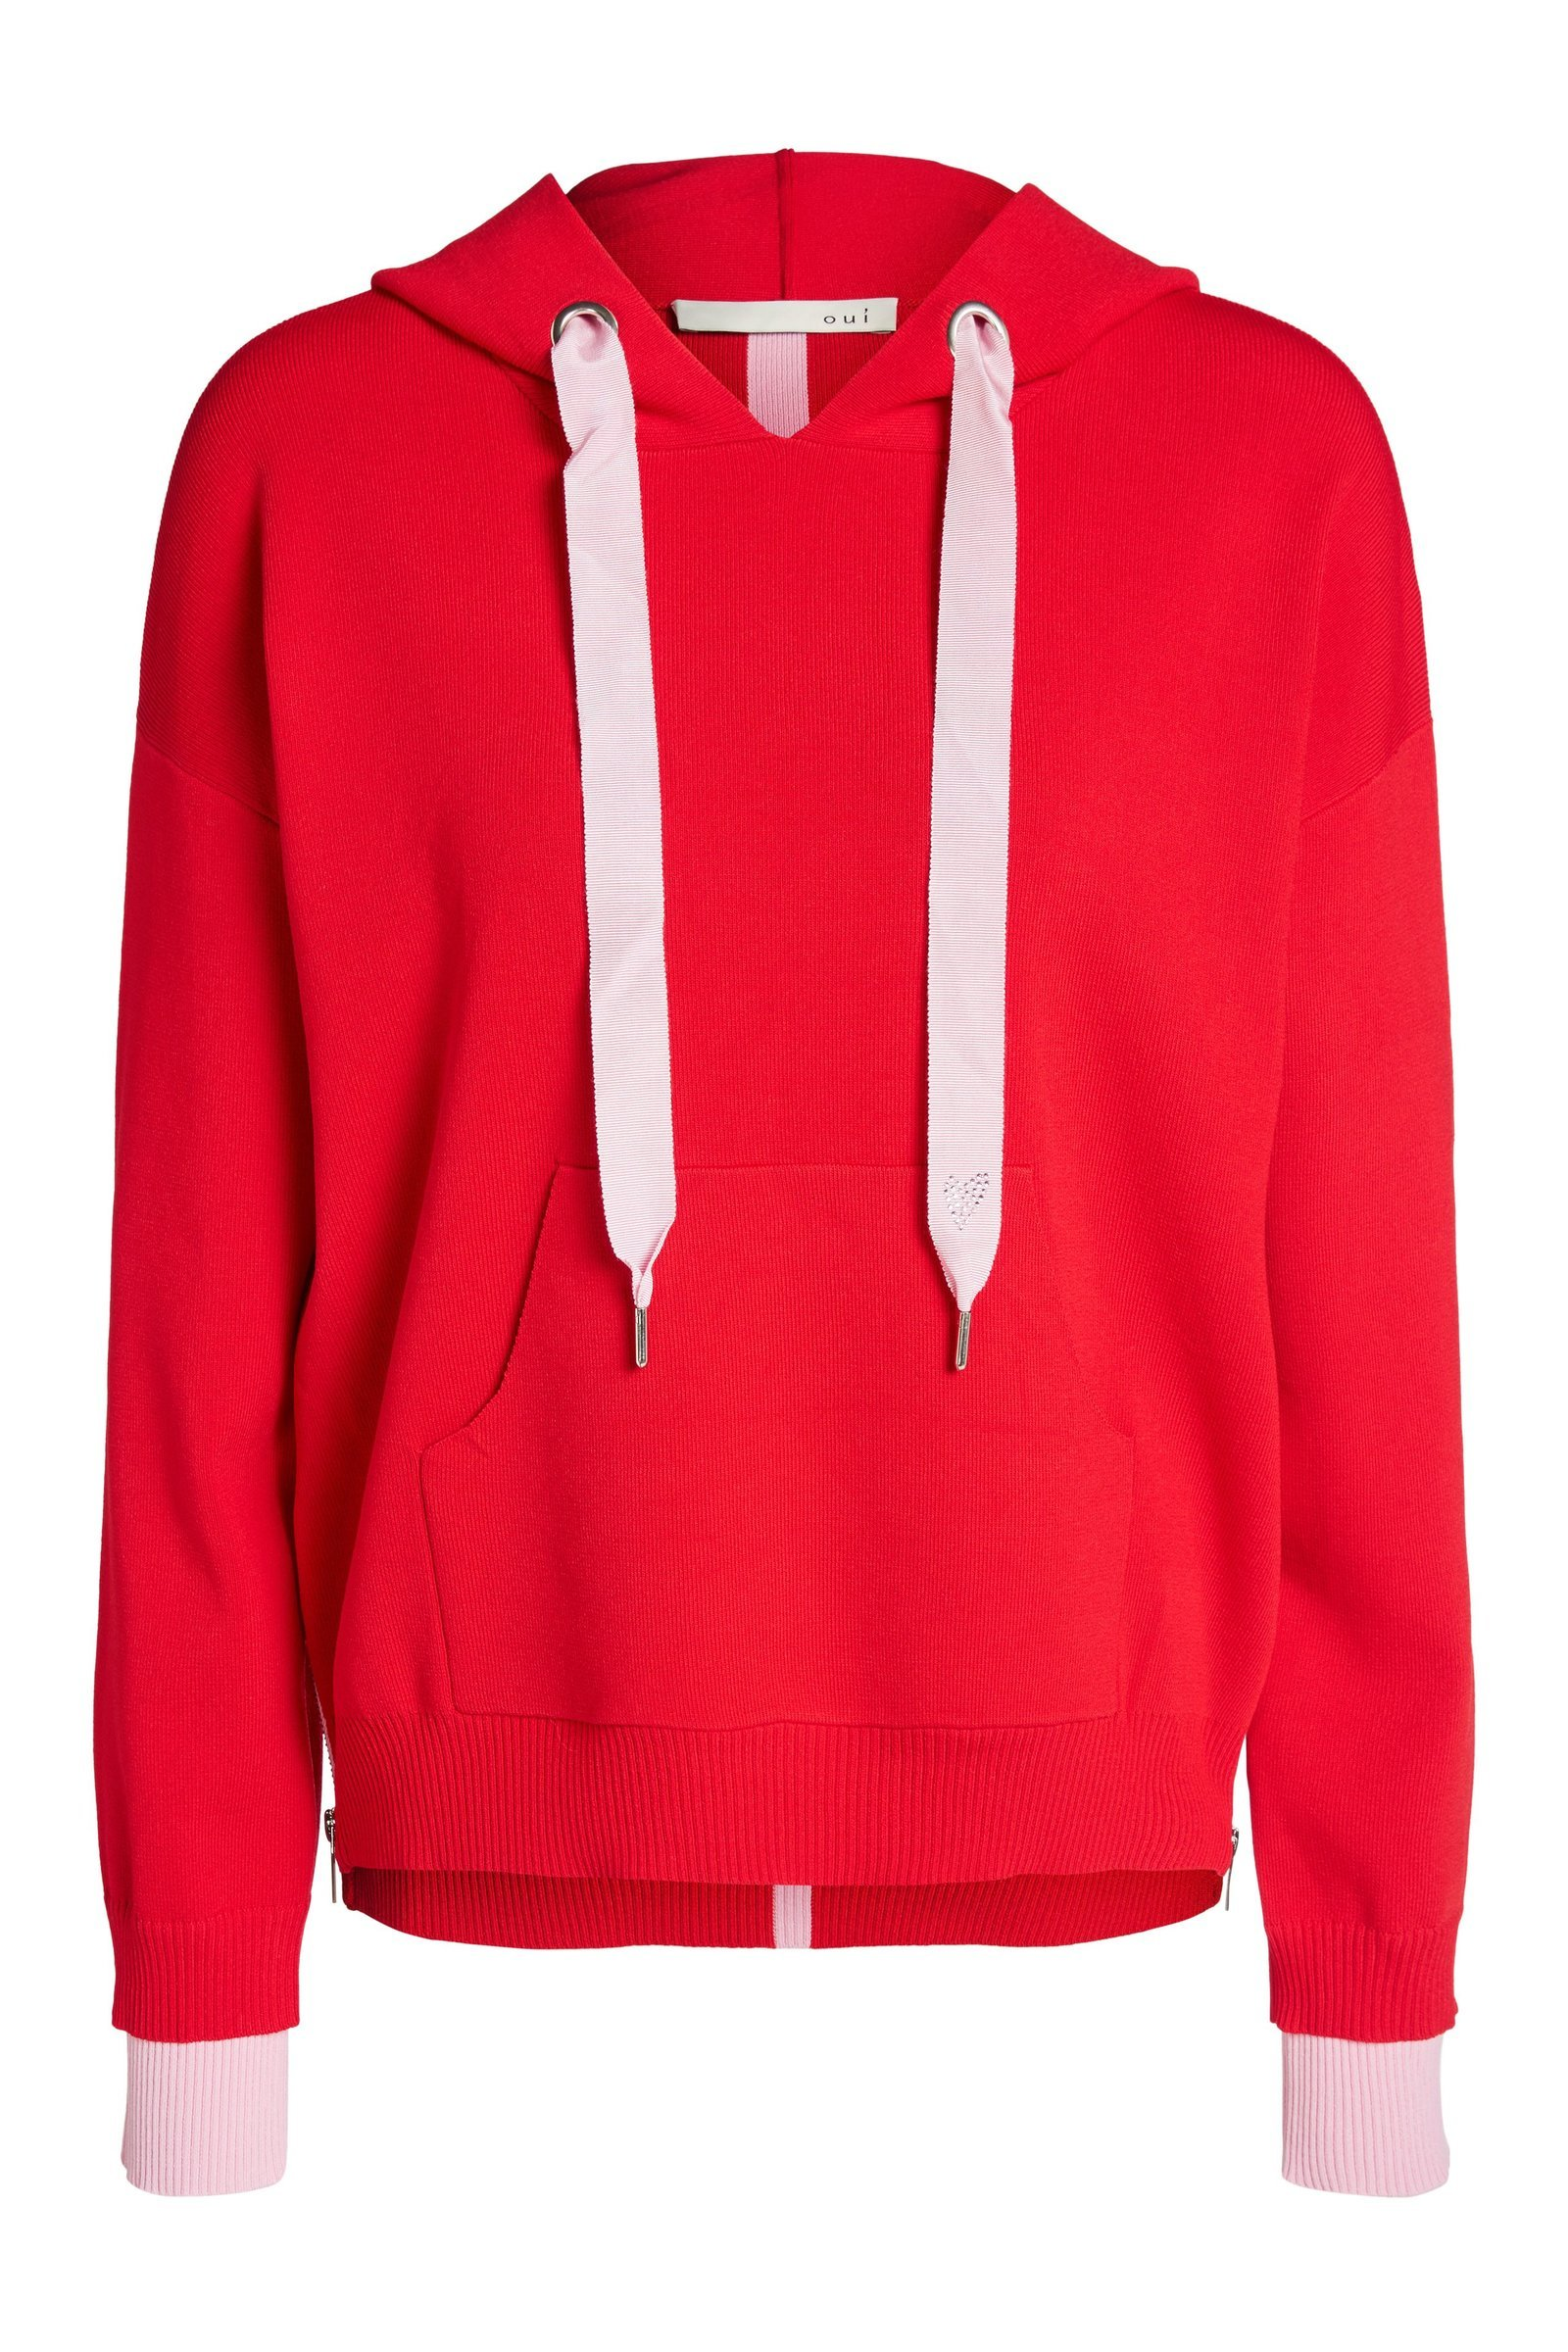 Red Knit Hooded Sweater with Pink Stripe and Ties